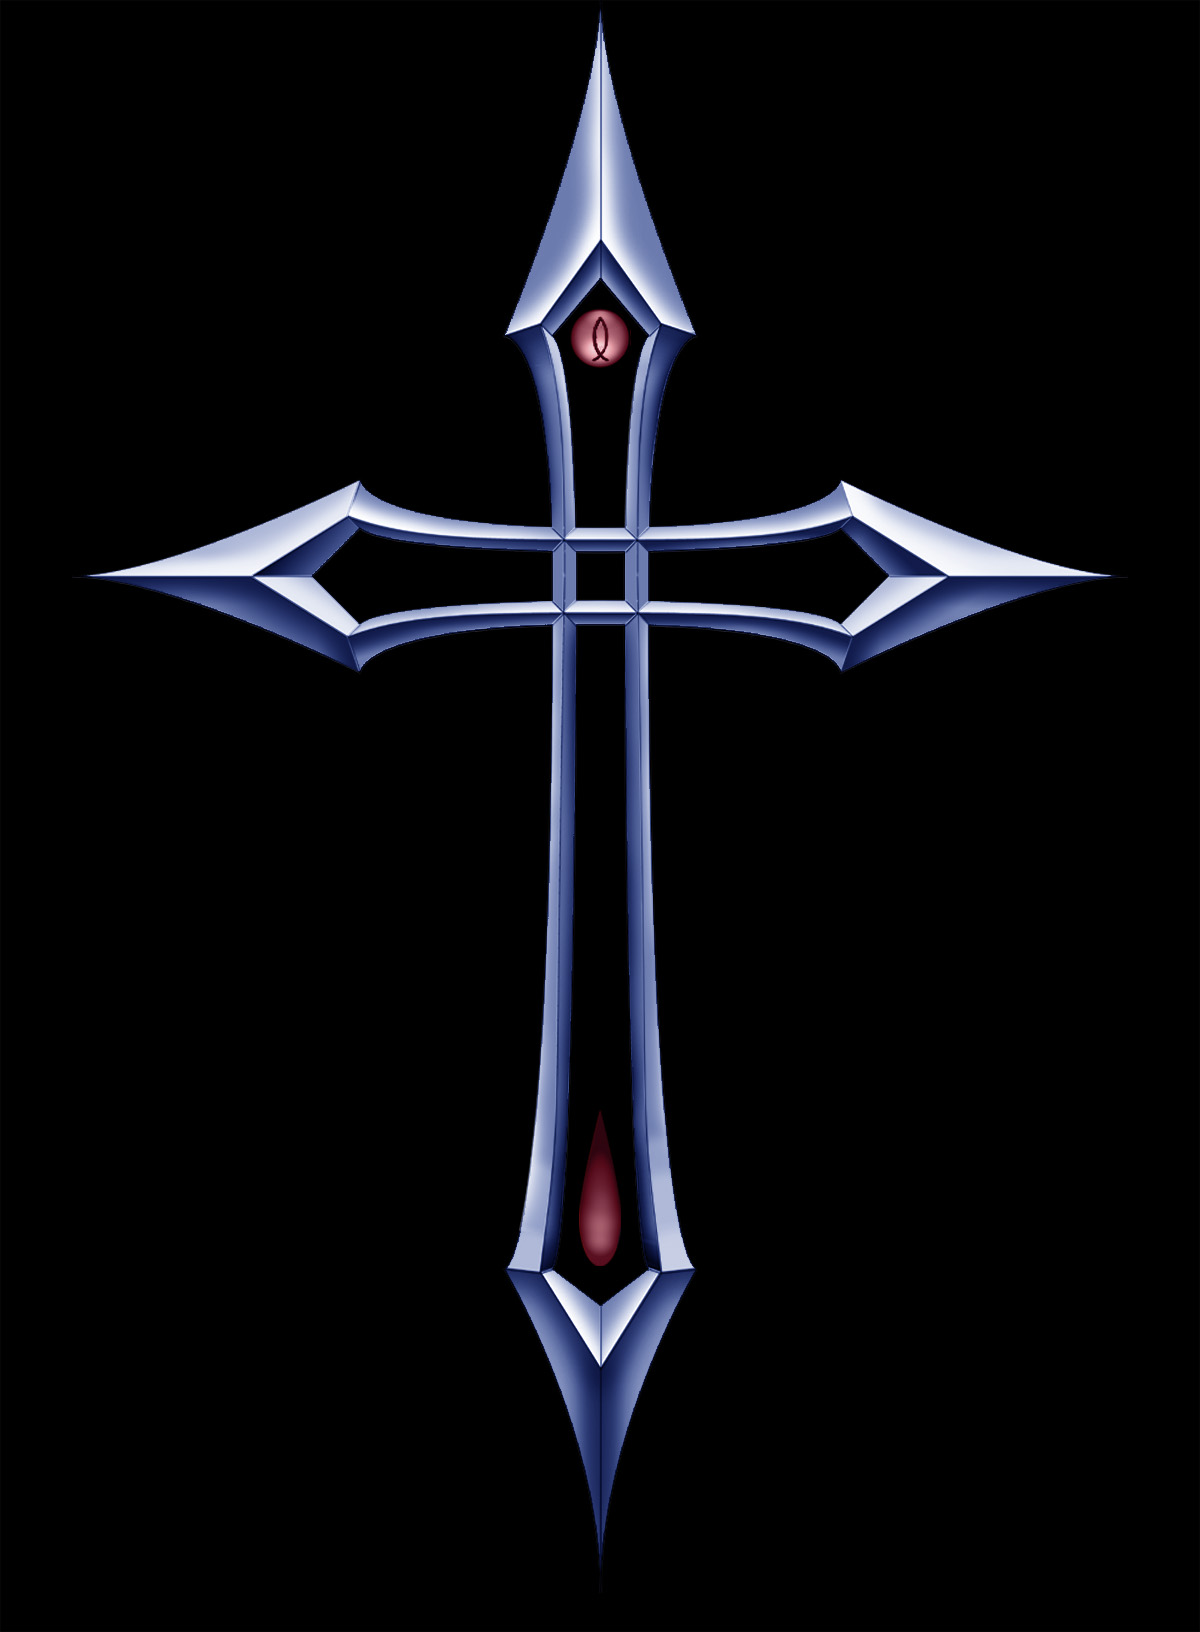 Cool Cross Wallpaper Images Pictures   Becuo 1200x1632